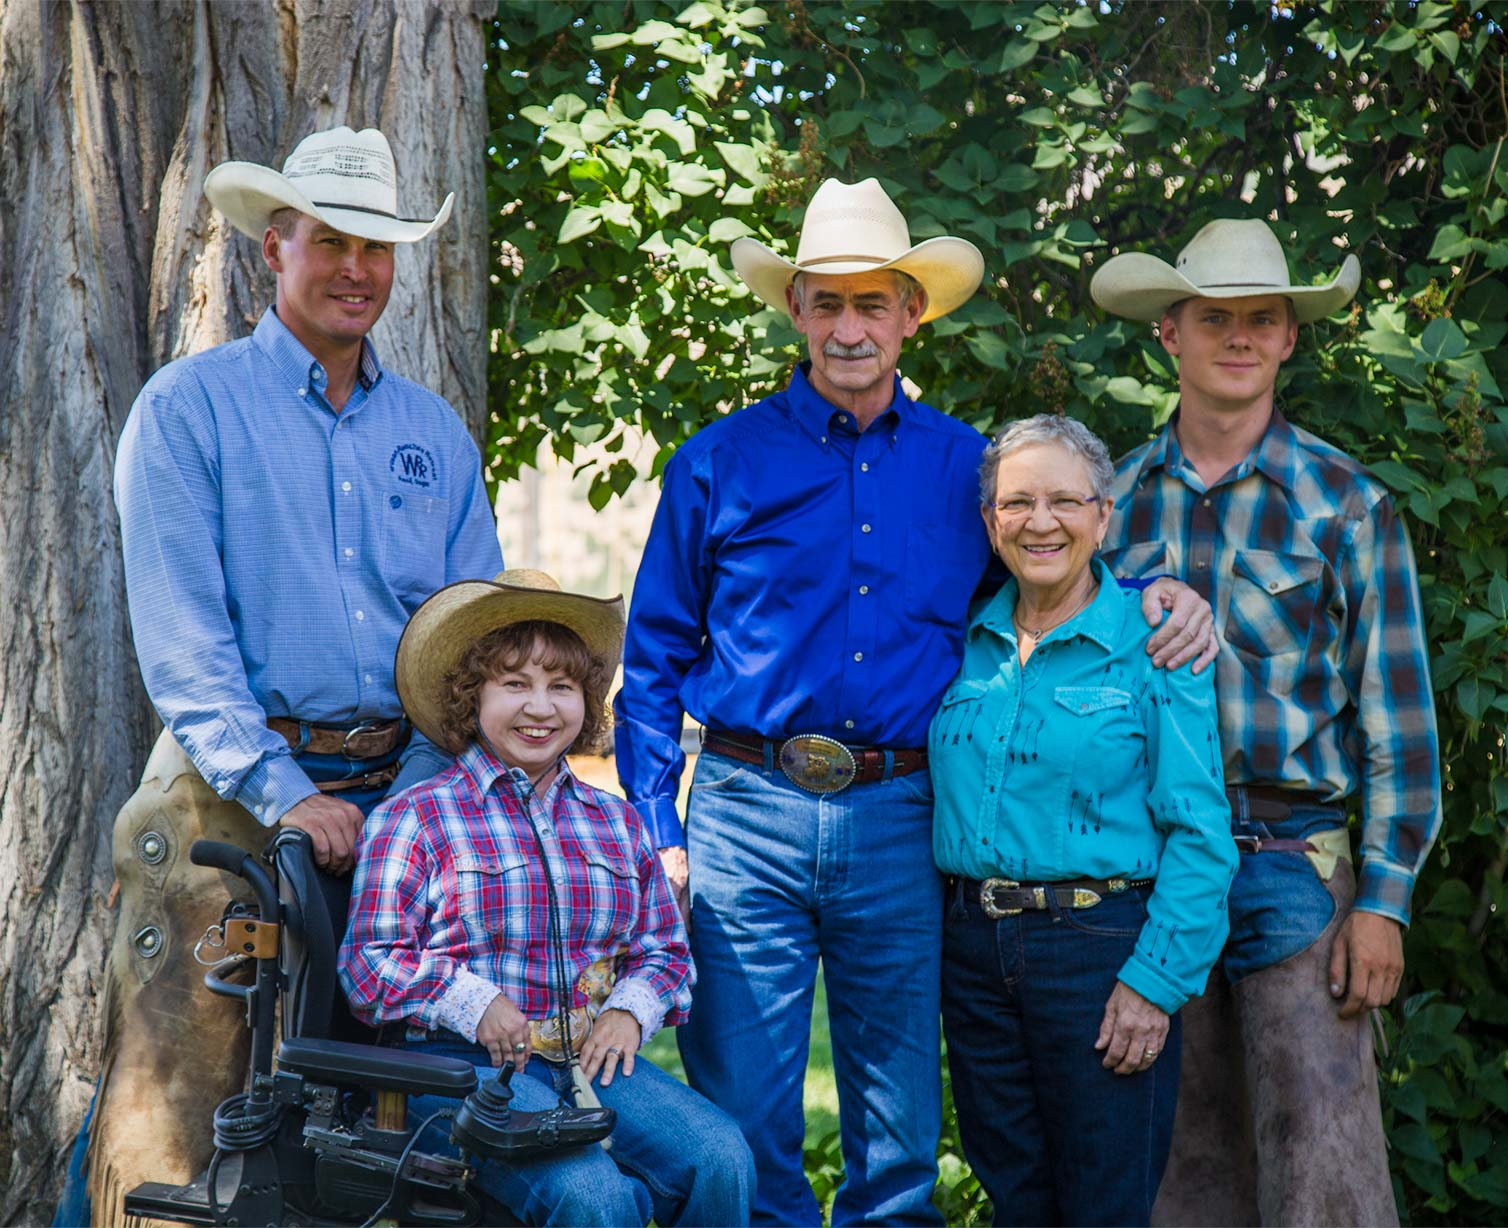 The Wilson Ranches Retreat Crew